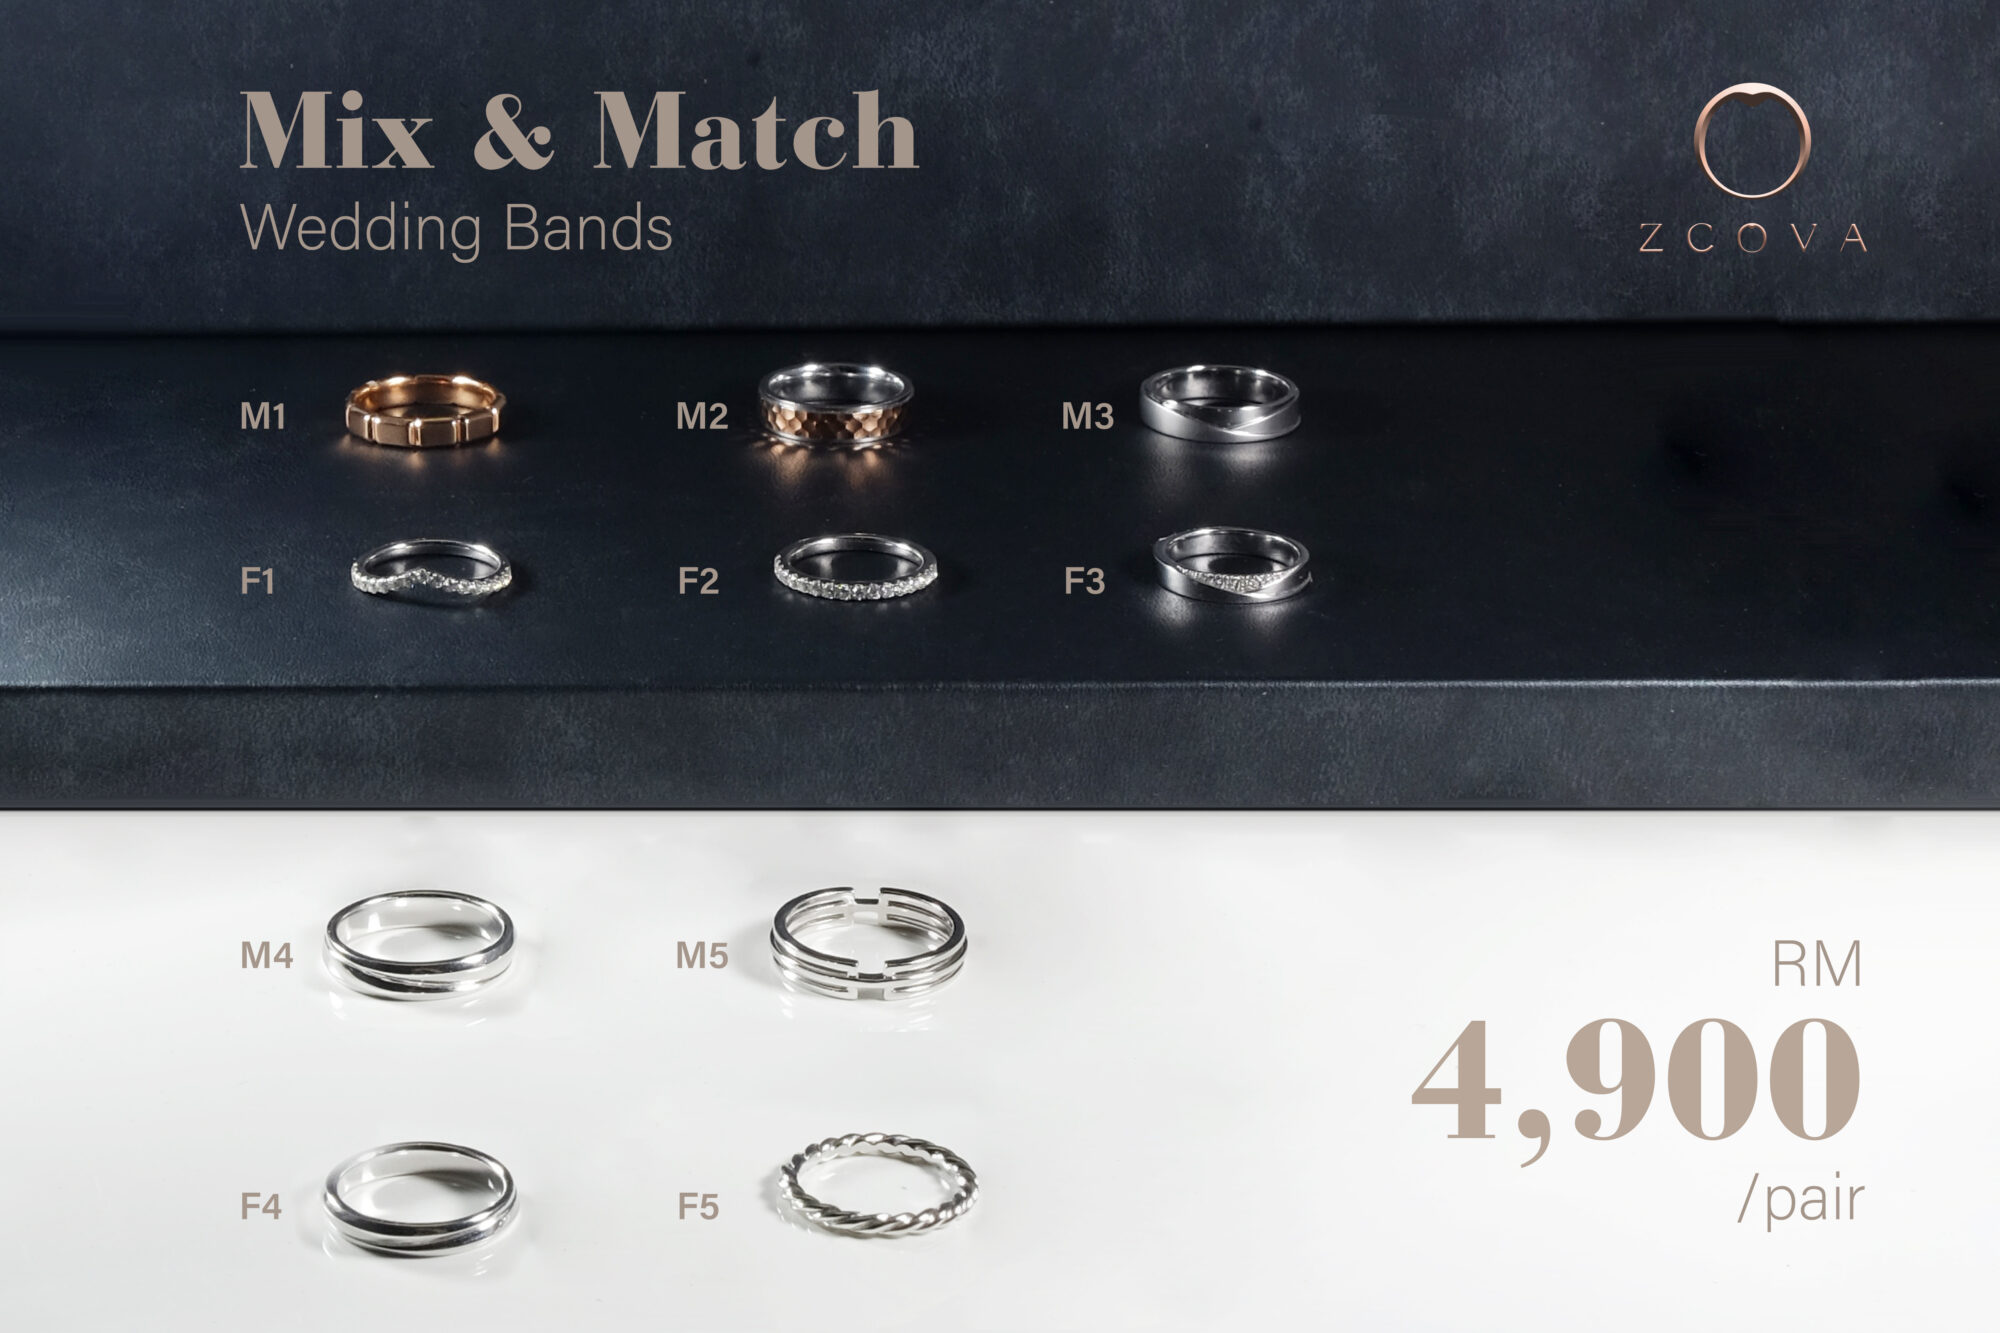 Wedding Band Promotion Malaysia (Mix & Match)